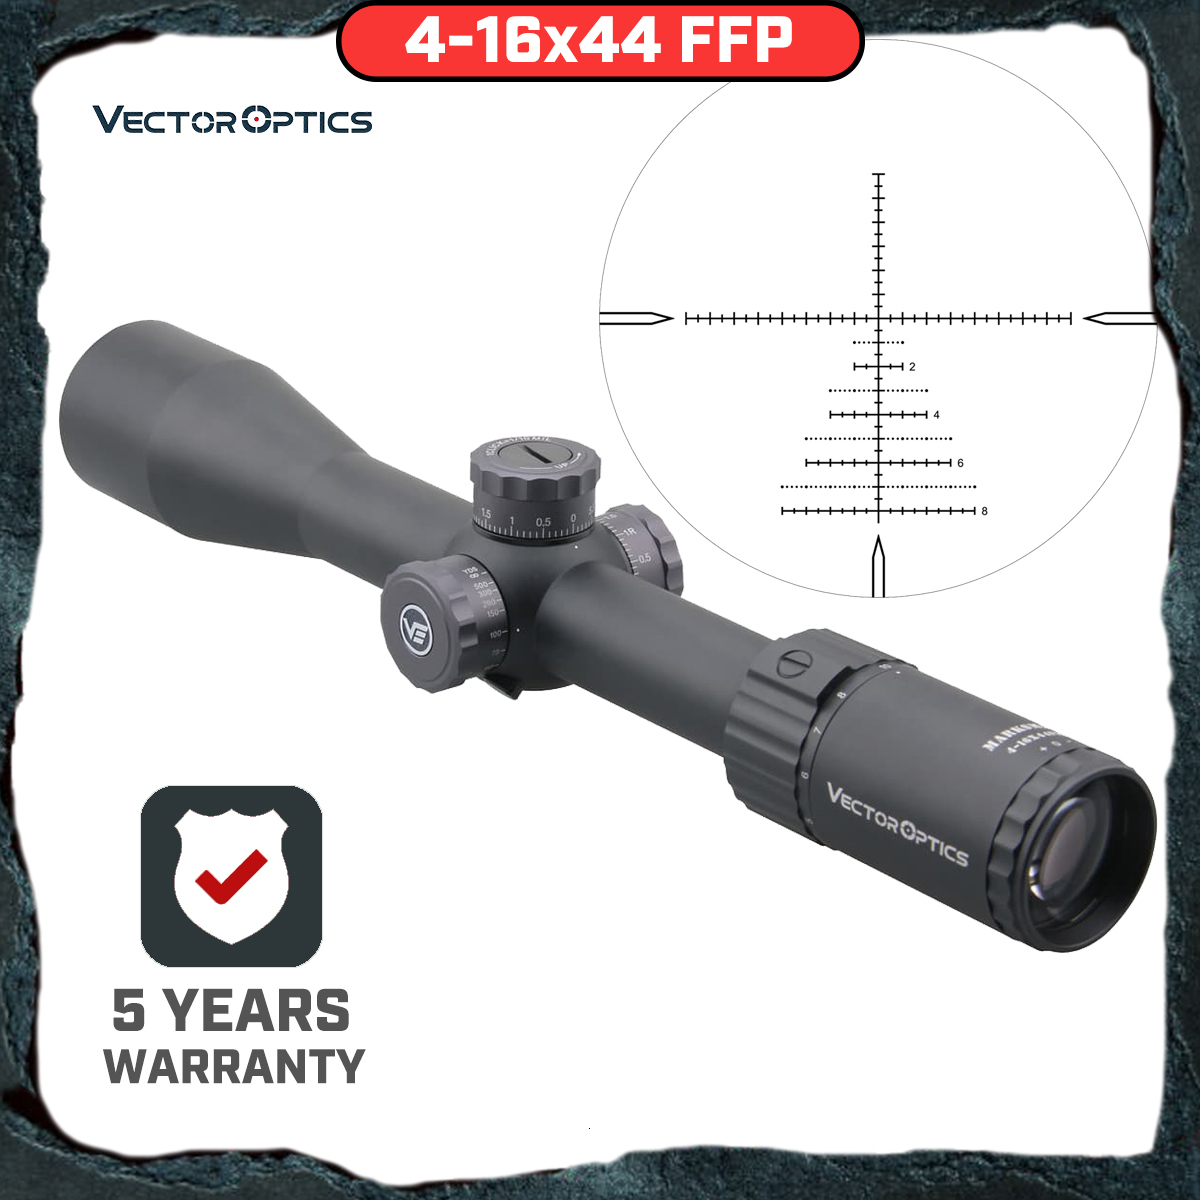 Vector Optics Marksman 4-16x44 FFP Tactical Riflescope 1/10 MIL Rifle Scope 30mm Monotube For Sniper Target Shooting Hunting